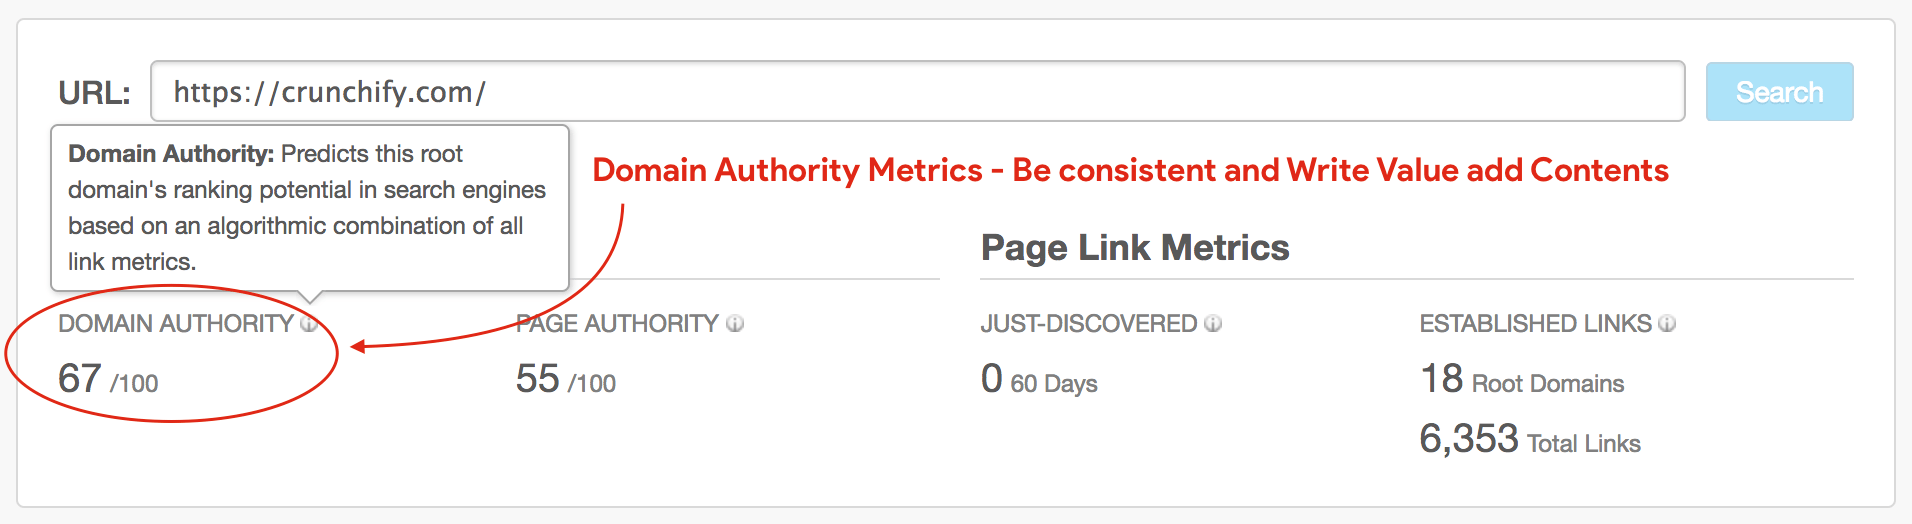 Domain Authority Metrics - Be consistent and Write Value add Contents